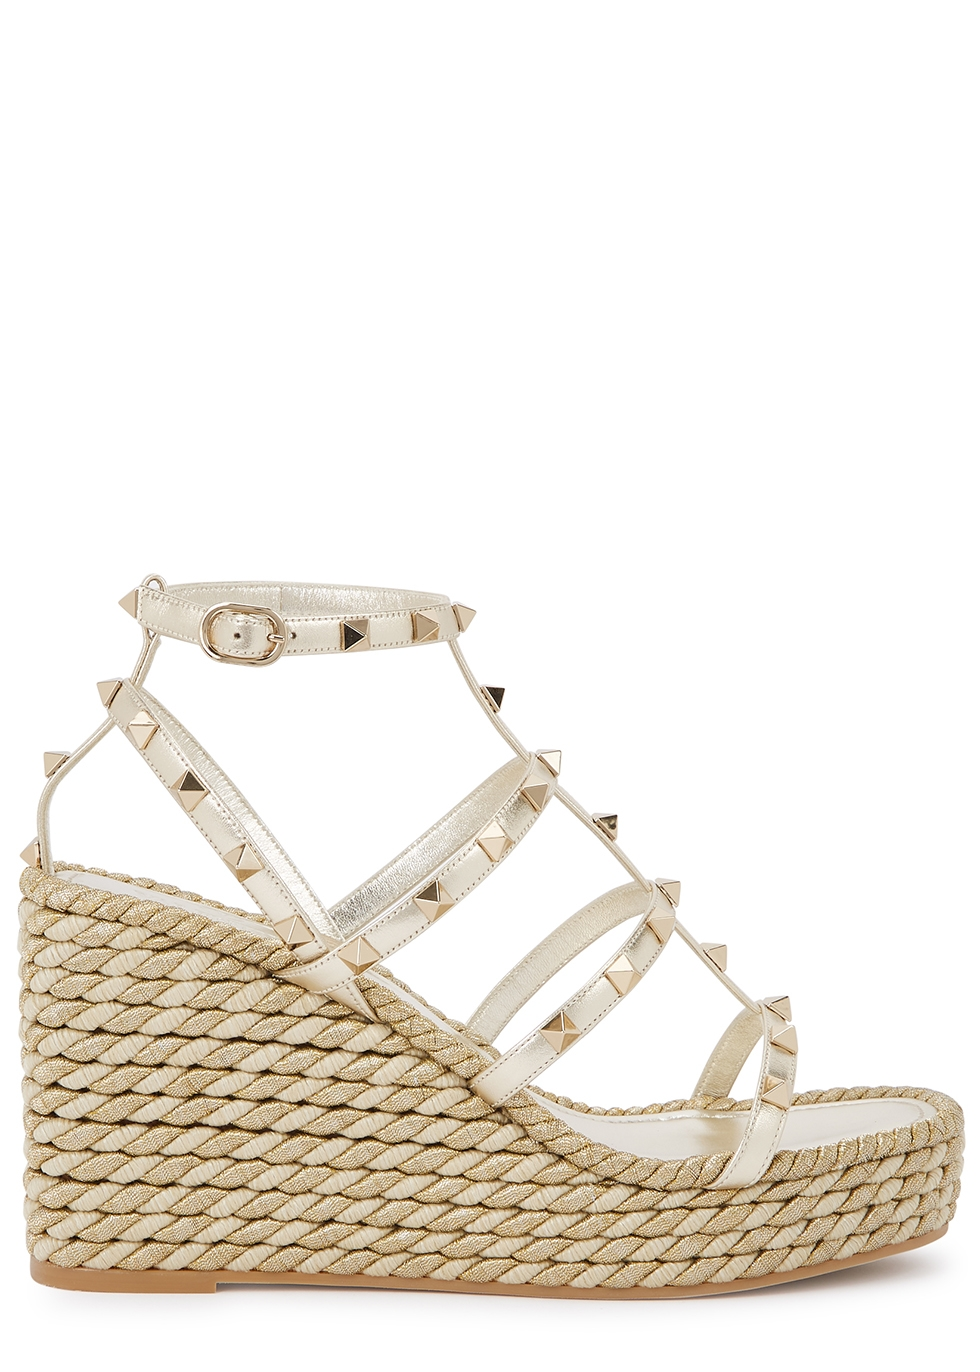 Valentino Garavani Rockstud 125 leather wedge sandals